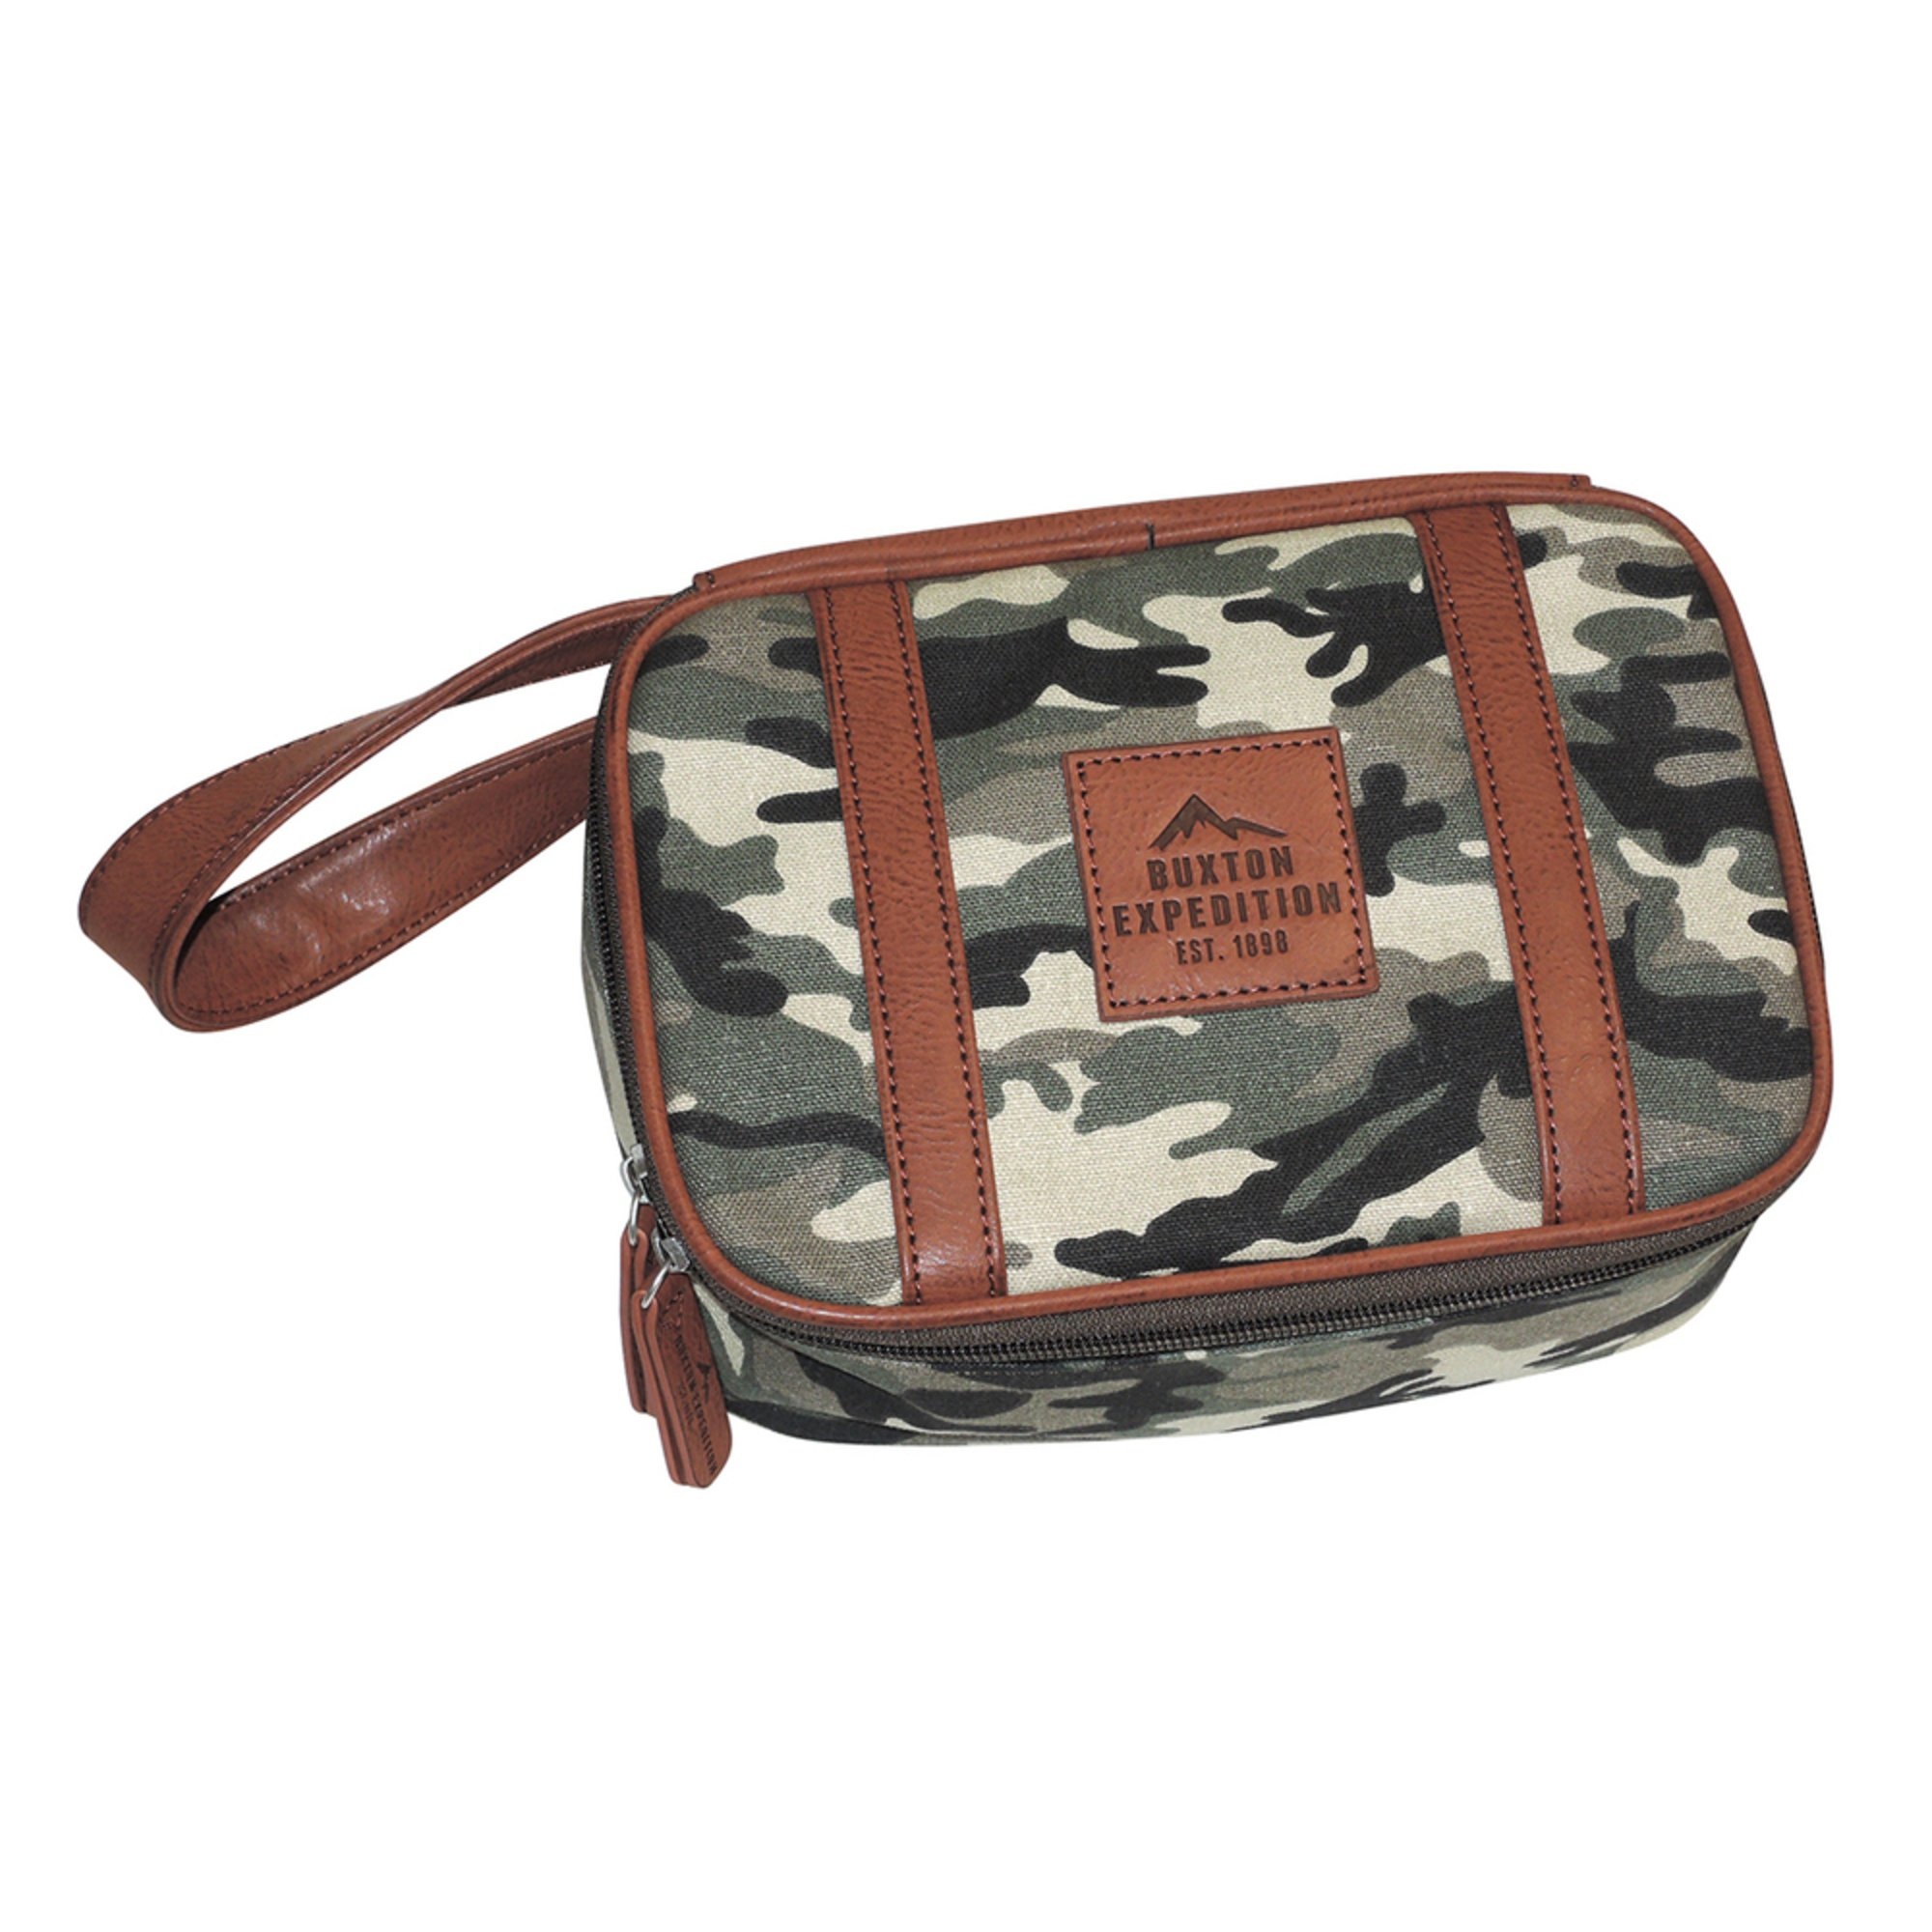 Buxton men 39 s expedition huntington gear top zip travel kit camo men 39 s accessories apparel for Travel expedition gear